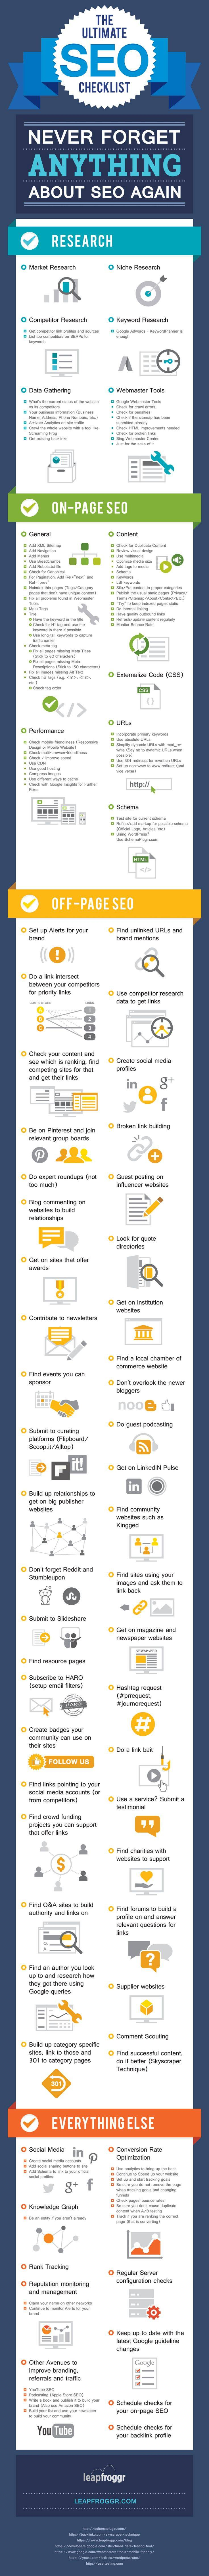 Ultimate On Page SEO checklist 2016 [Latest]